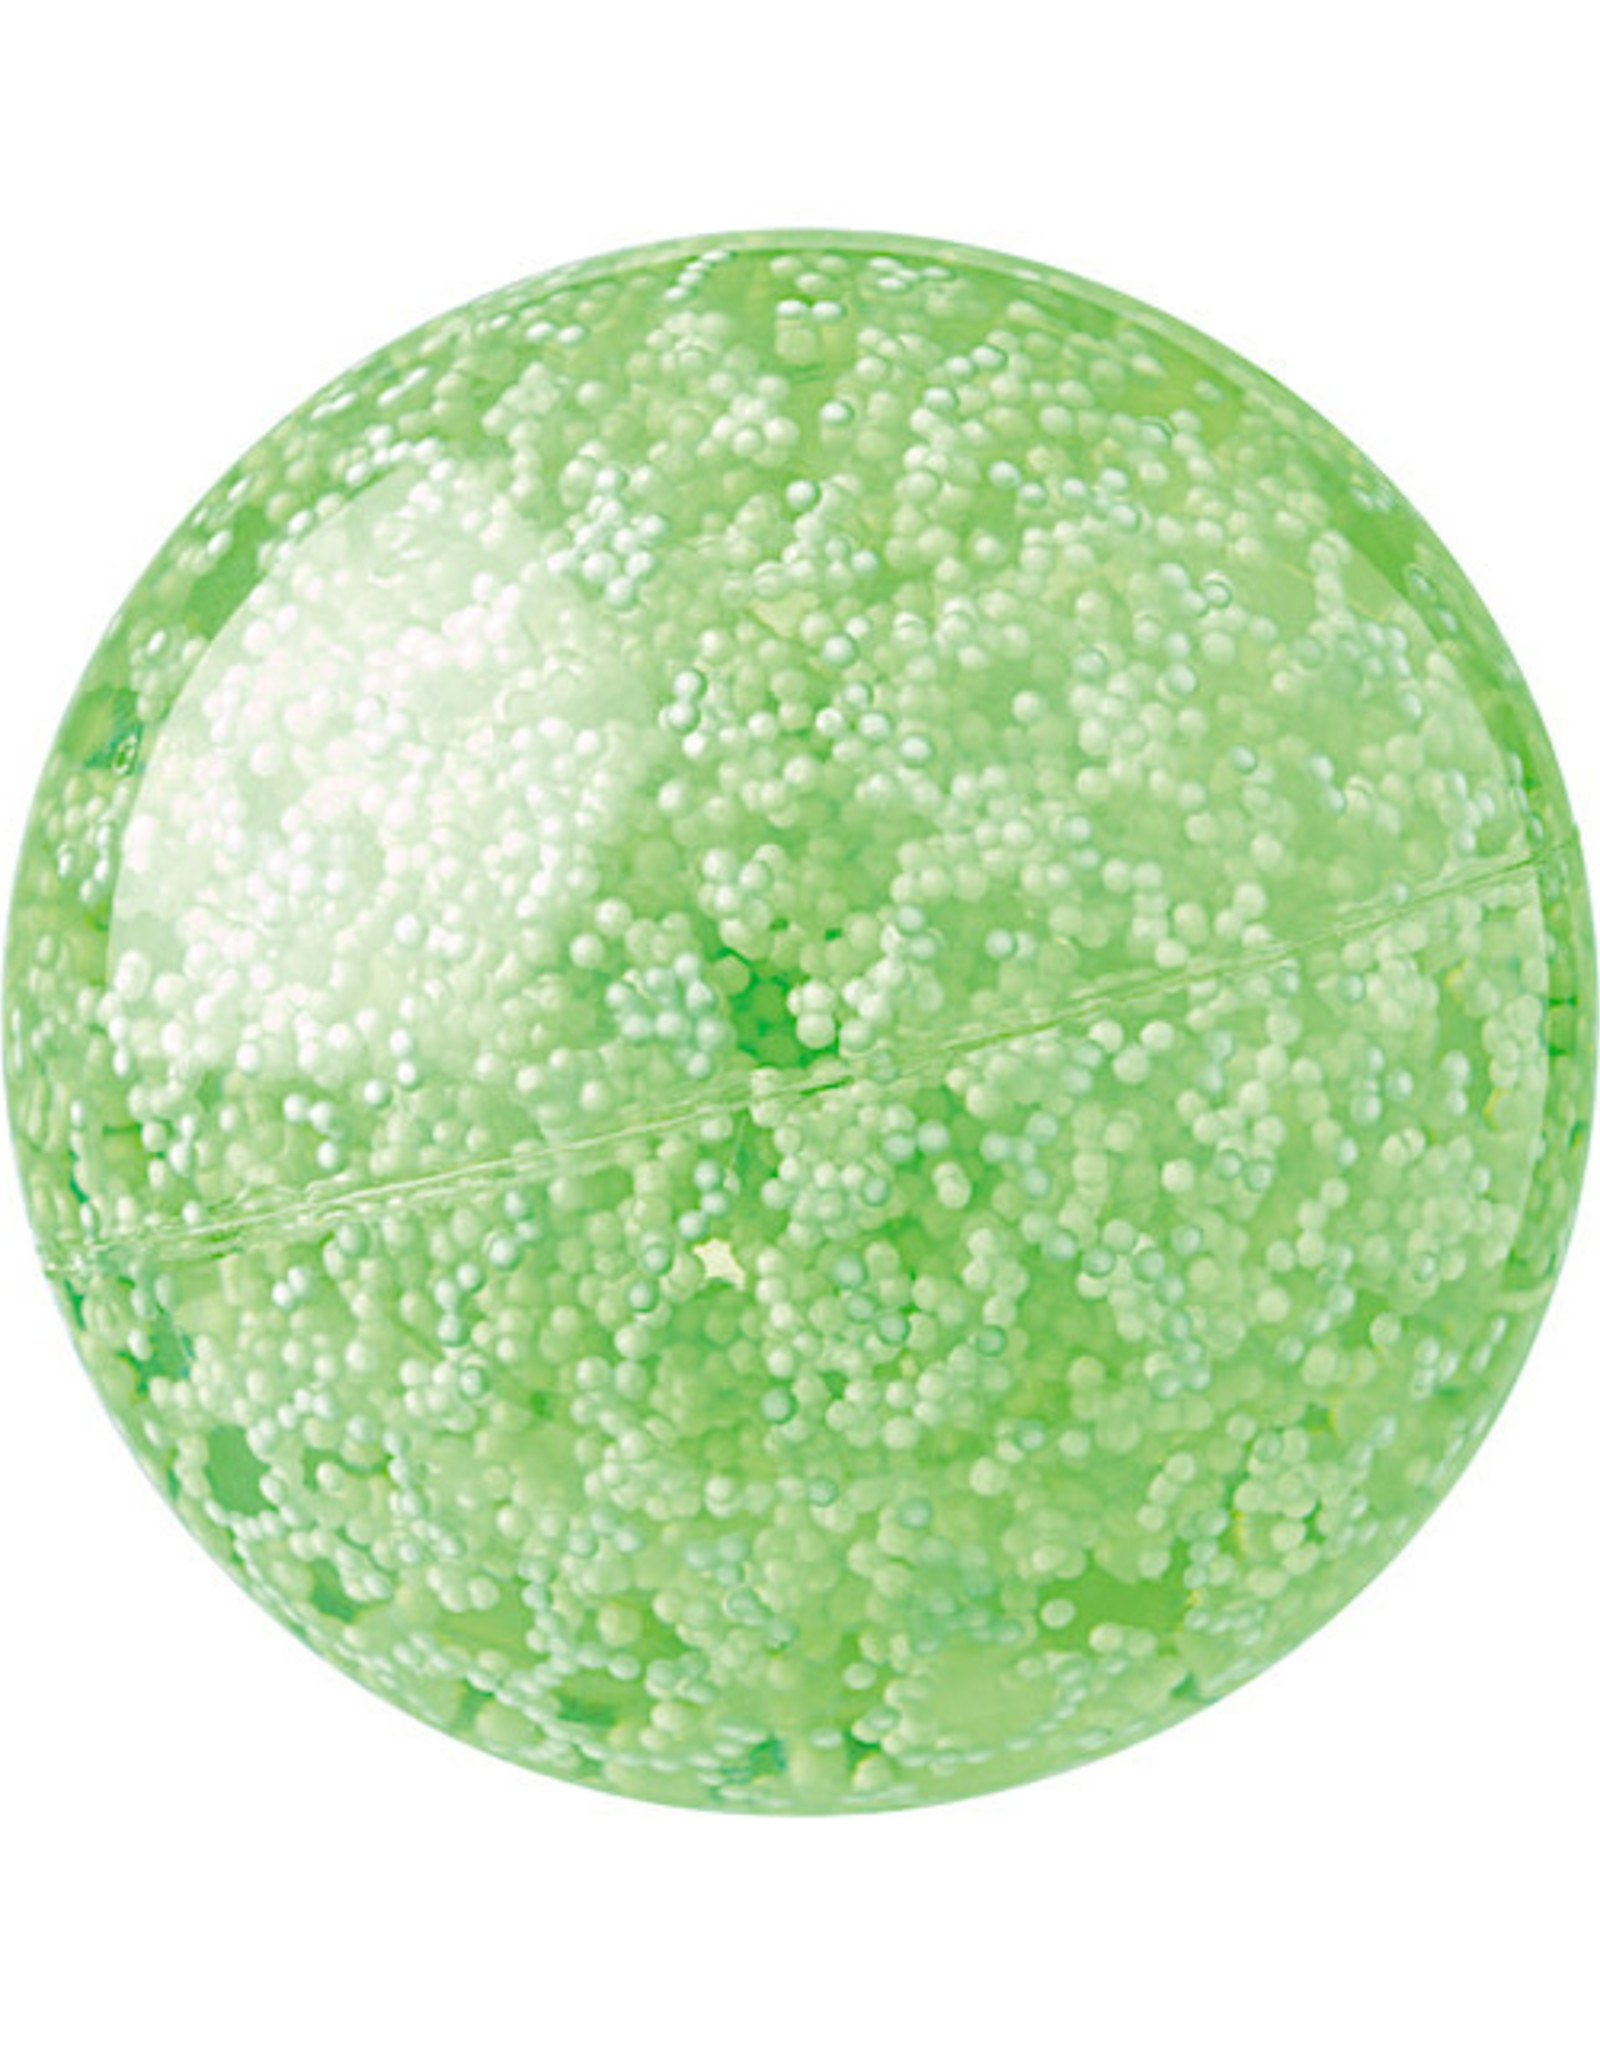 Coral Reef Ball